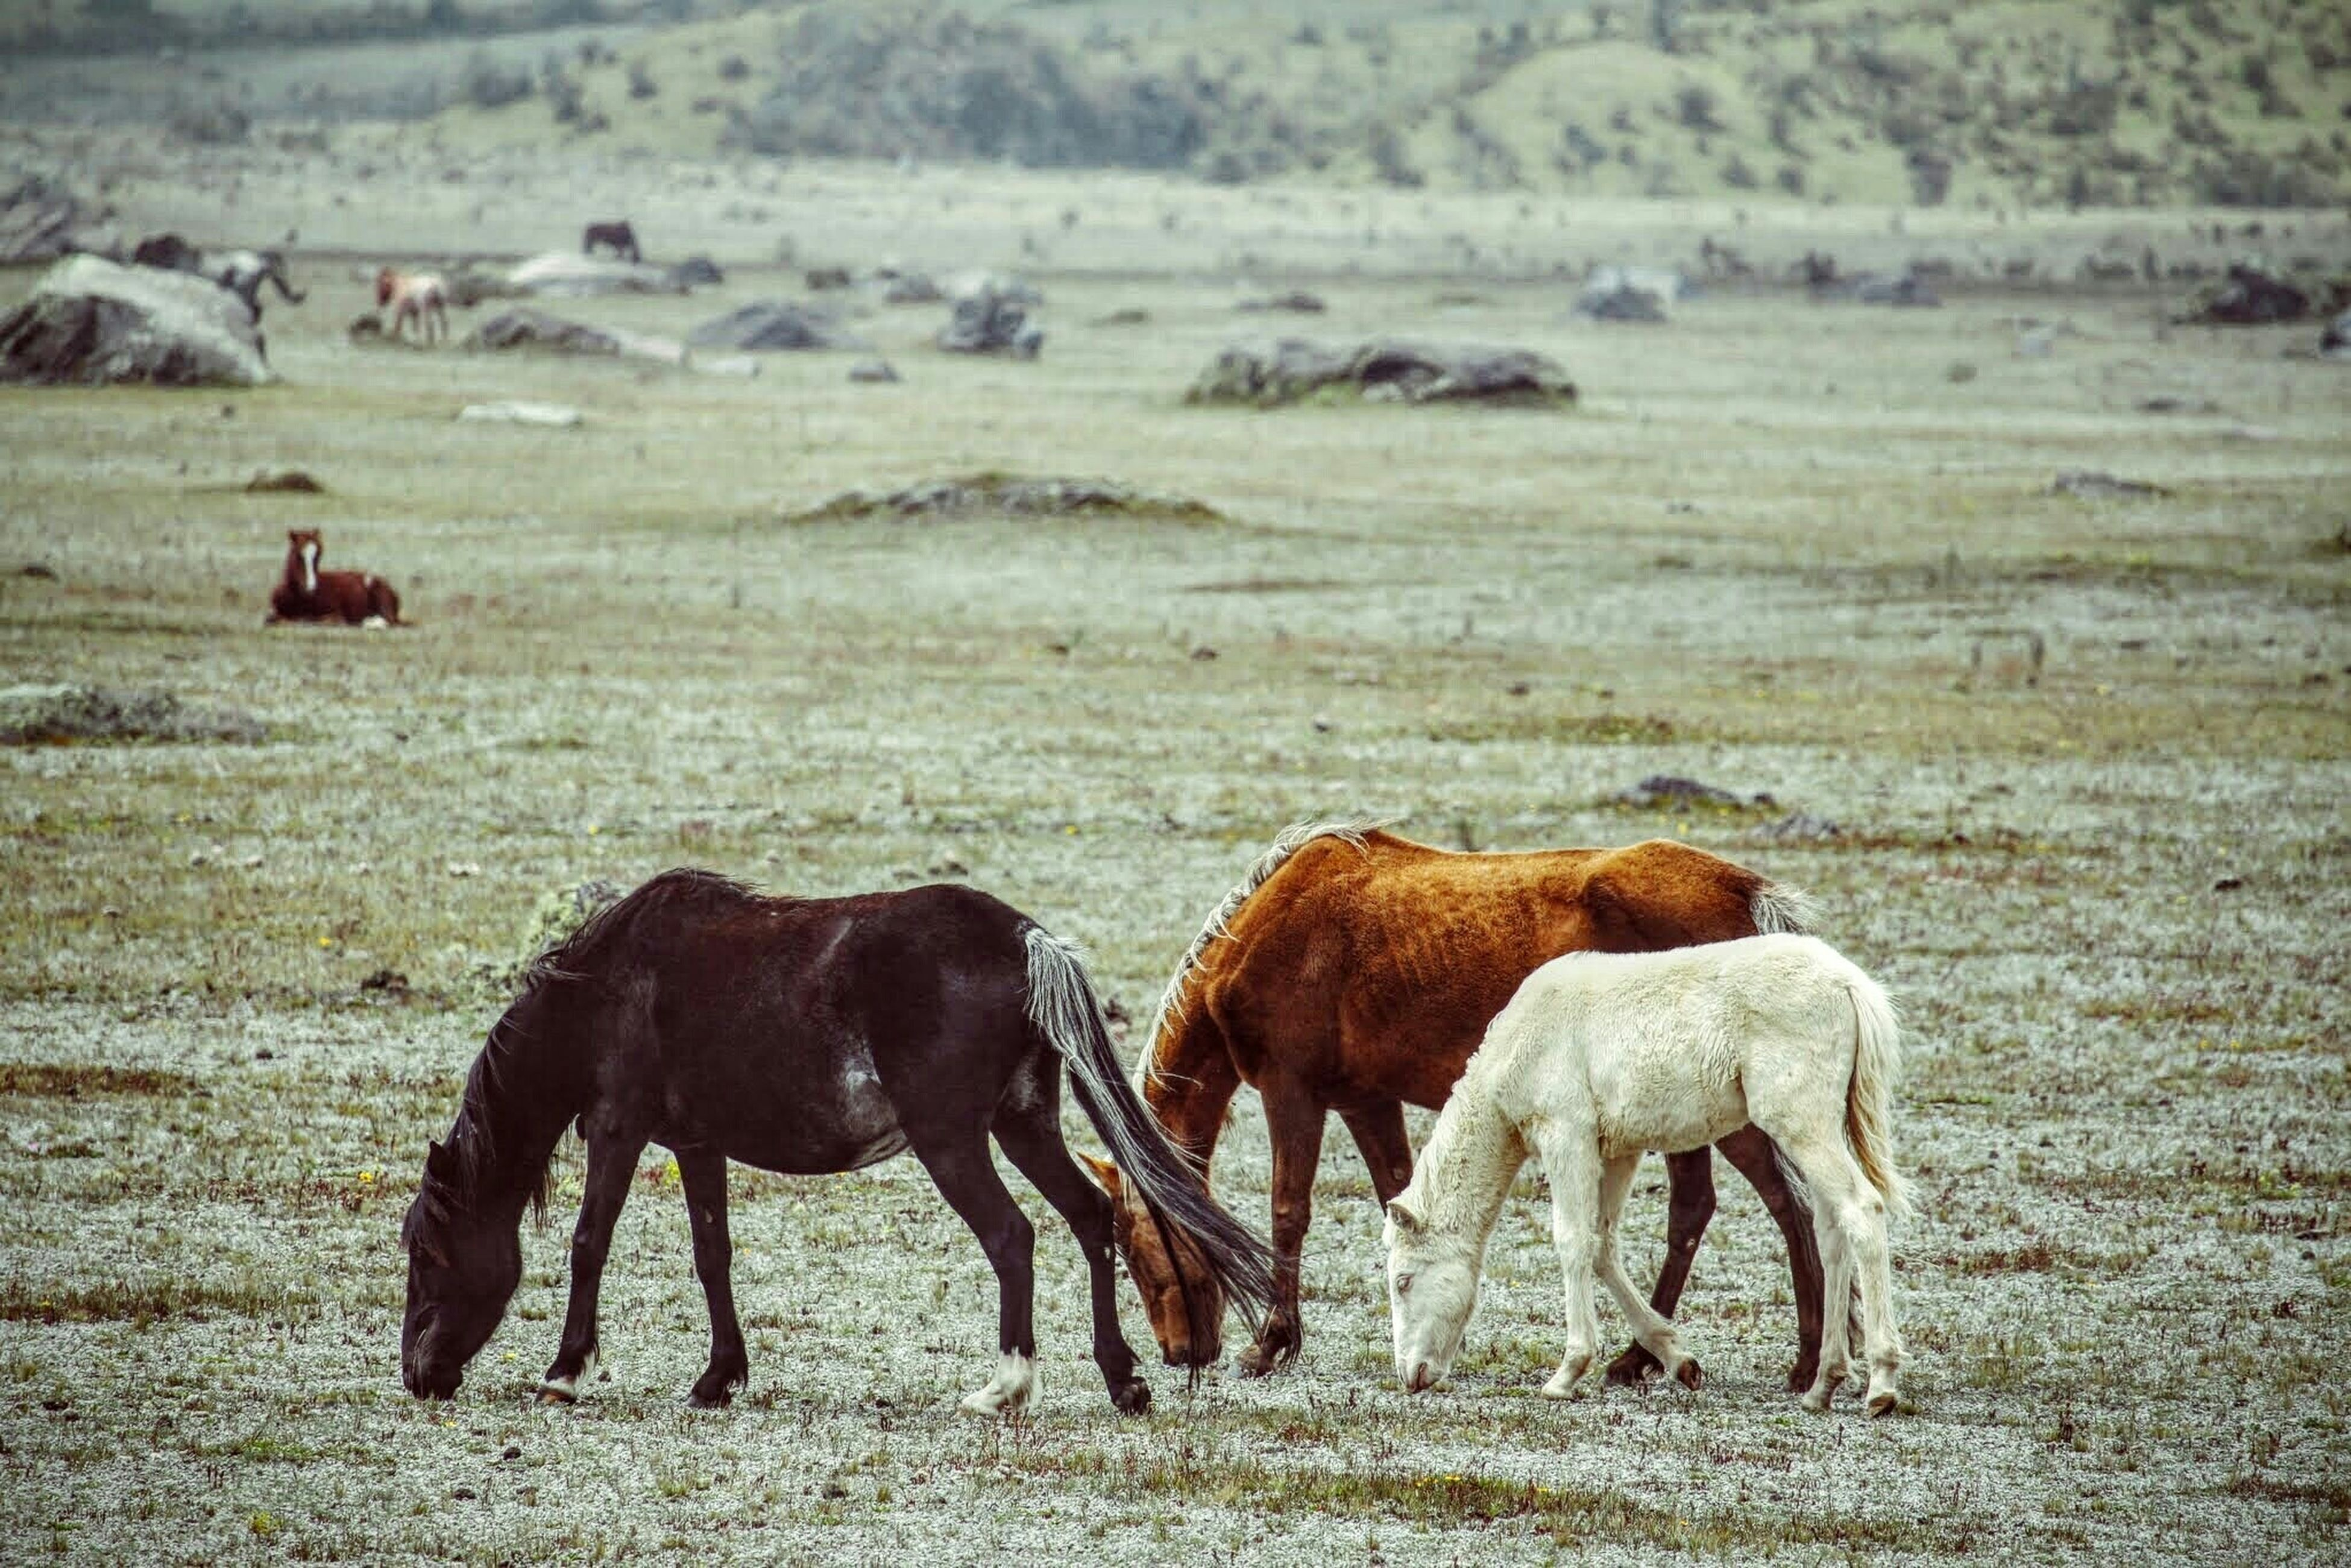 animal themes, mammal, domestic animals, livestock, field, standing, herbivorous, two animals, grazing, togetherness, animal family, medium group of animals, nature, full length, three animals, landscape, grass, cow, young animal, zoology